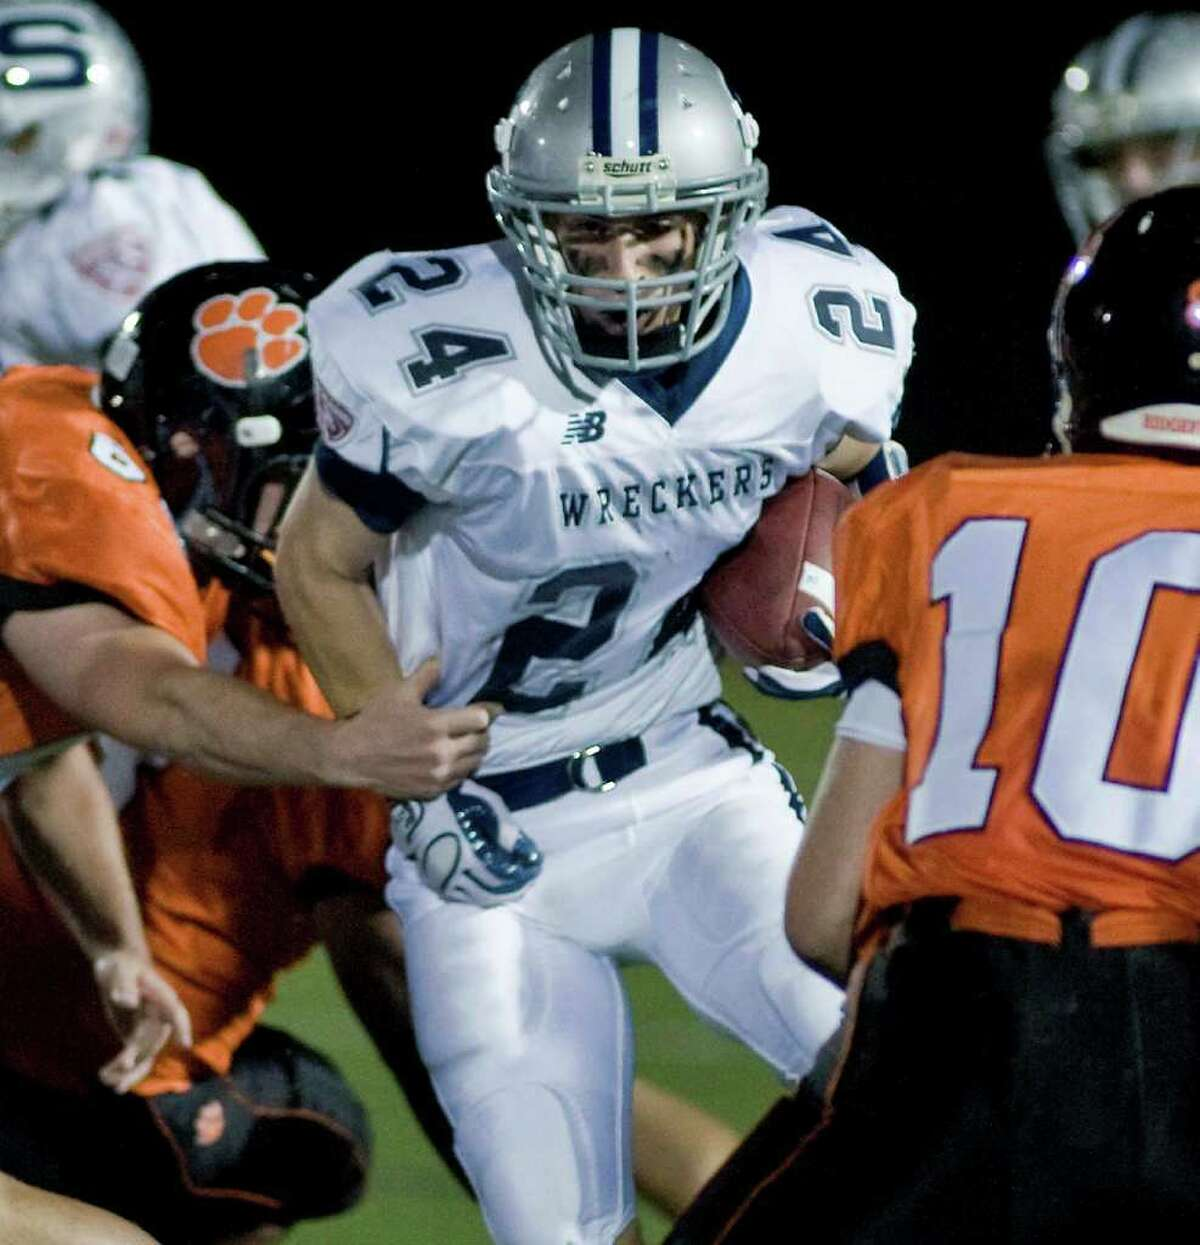 Tyler Jacobs of Staples running the ball during a football game against Ridgefield, at Ridgefield. Friday, Oct. 1, 2010